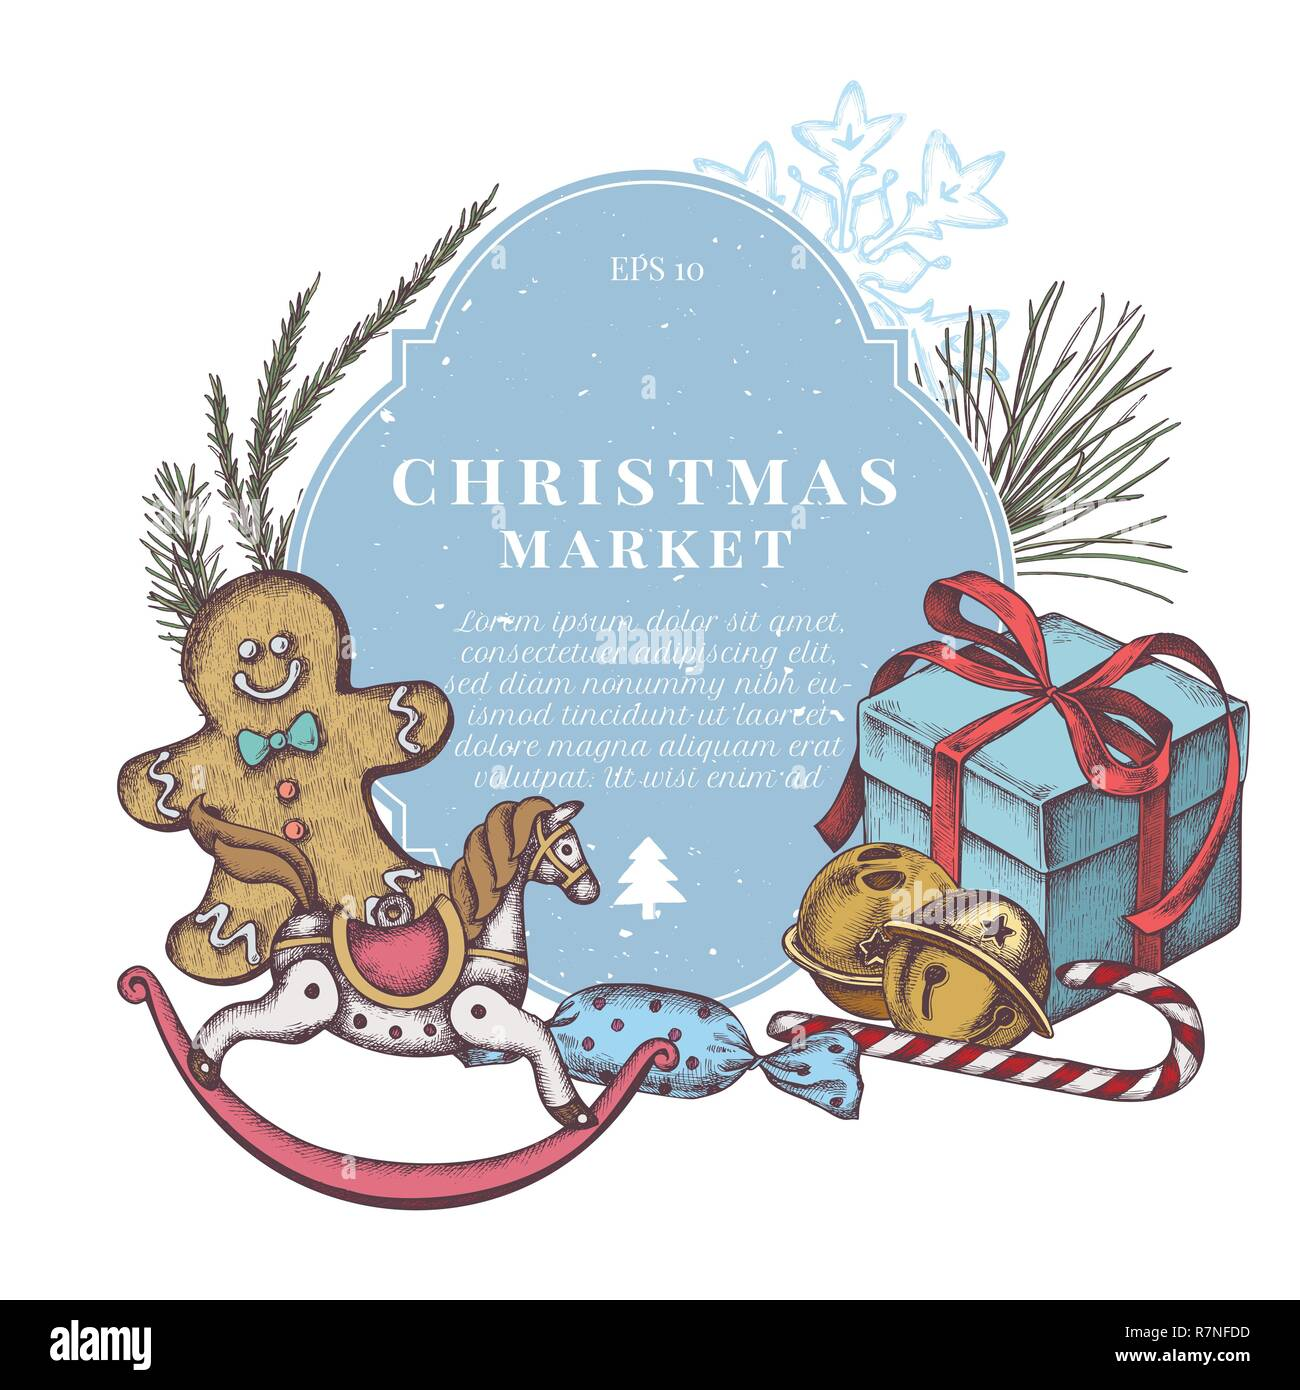 Vector composition with colored gingerbread men, jingles, snowflakes, lollipop, candies, gift boxes, pine branch, spruce, redwood, toy horse - Stock Image